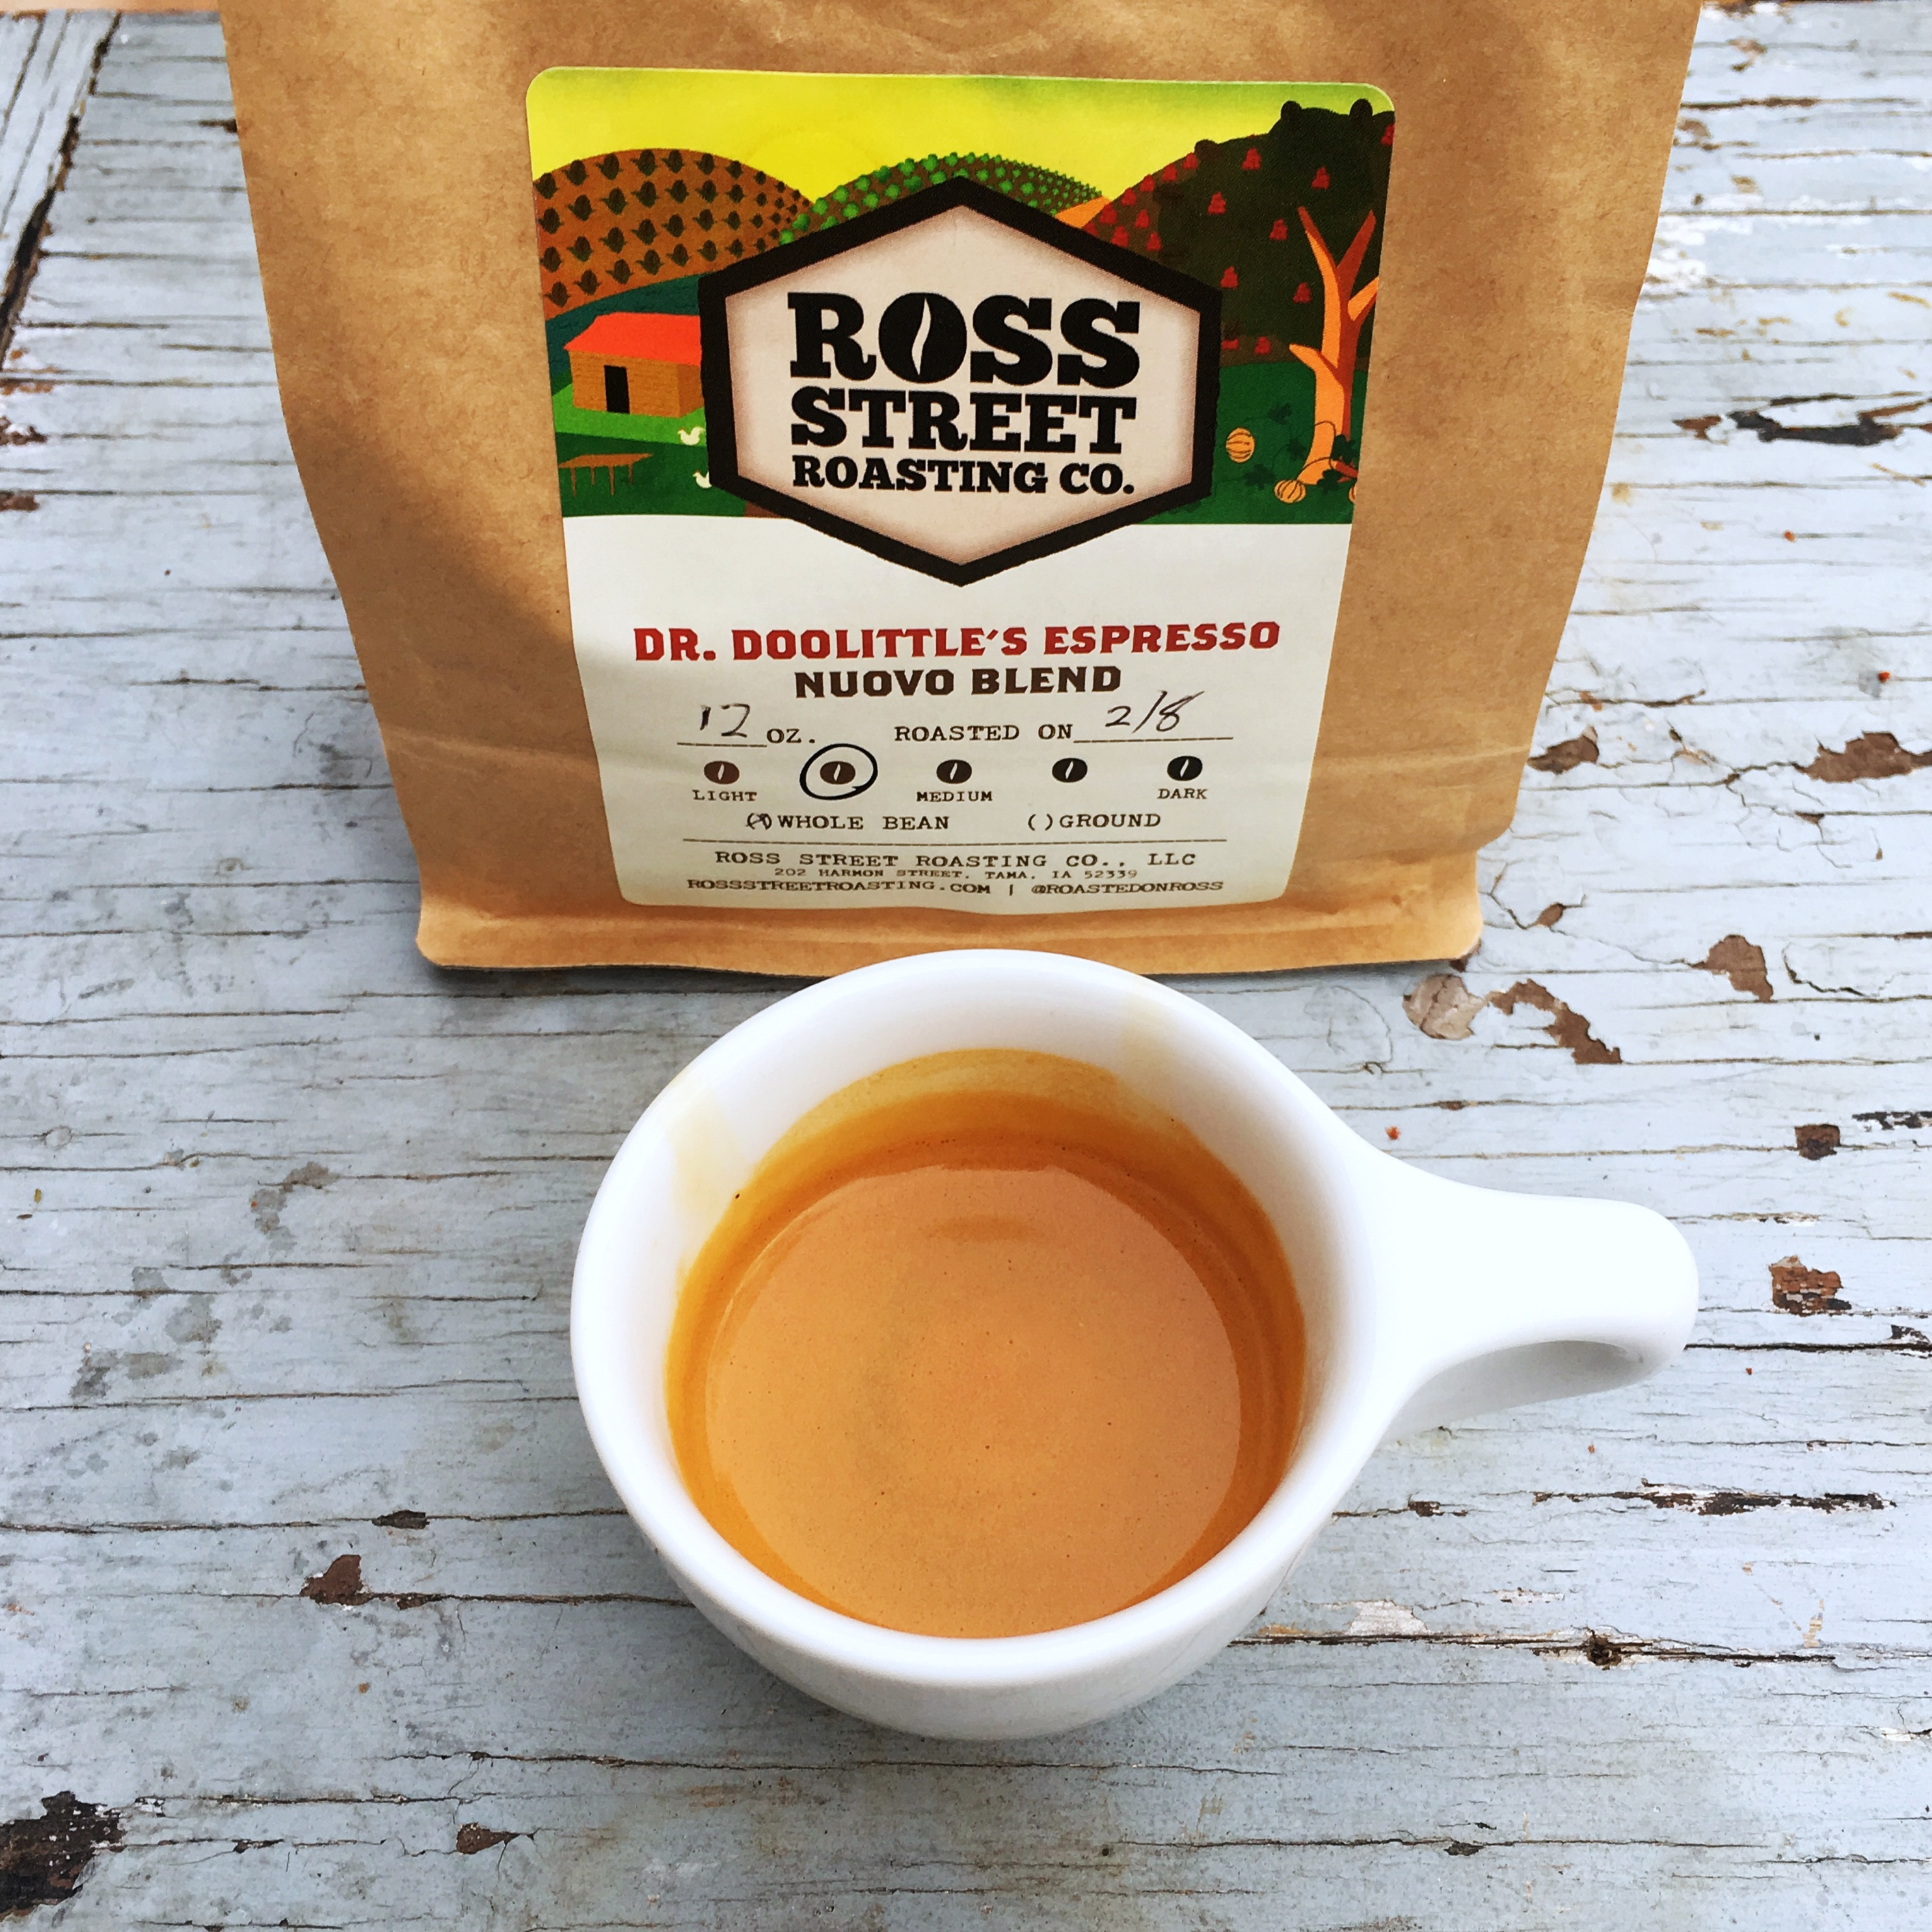 Ross Street Roasting Co. Dr. Doolittle's Espresso Nuovo